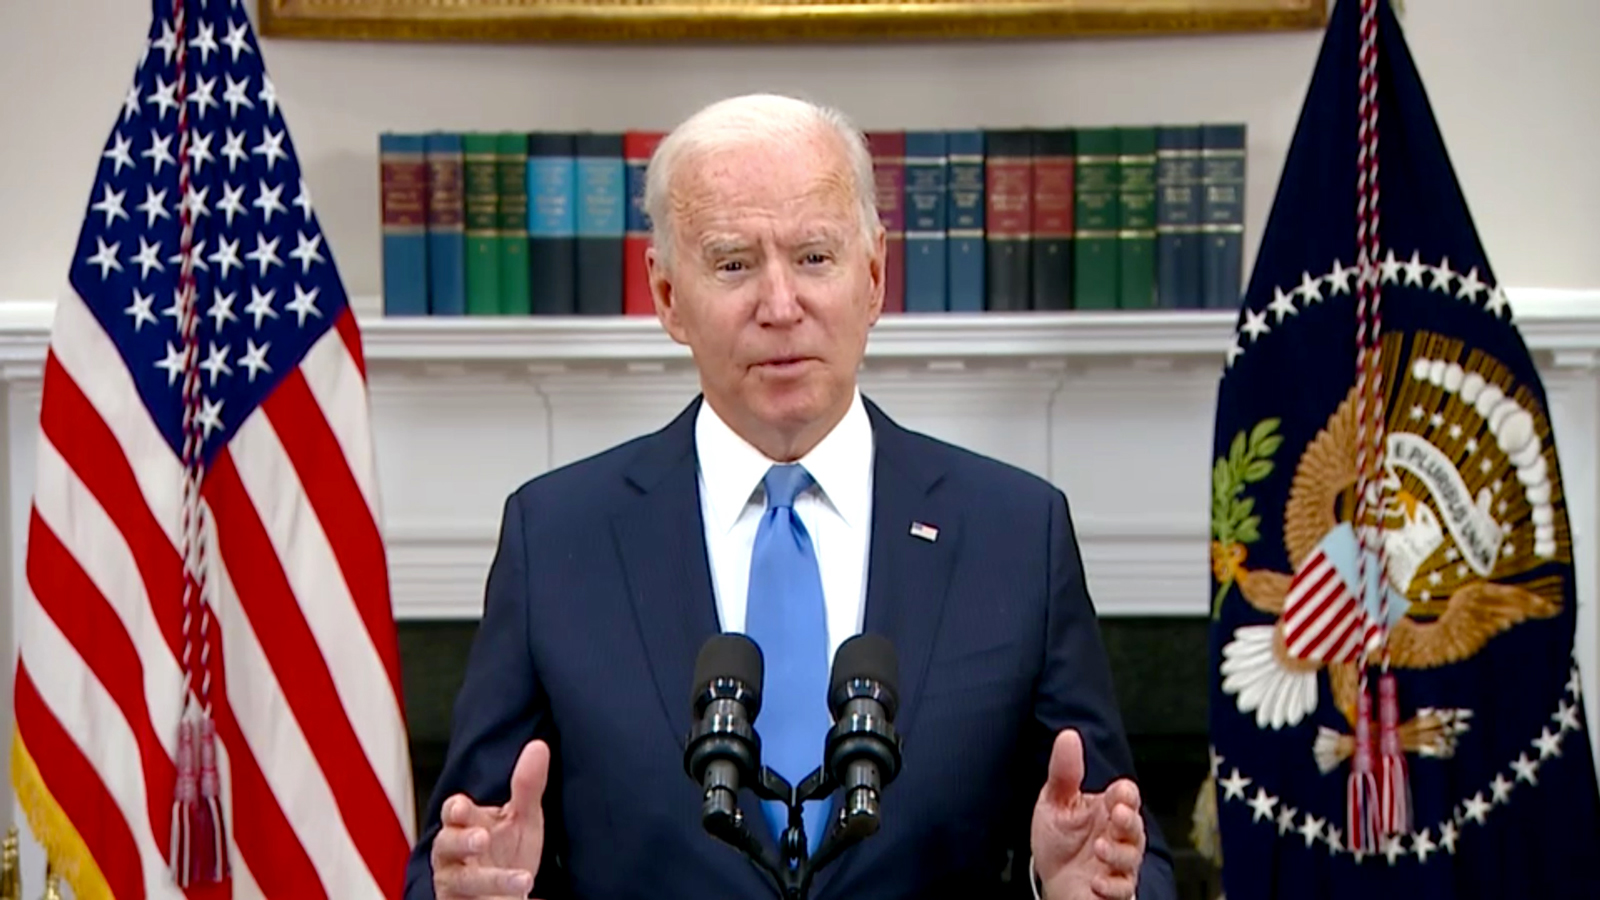 Biden confident that Russian government not involved in pipeline attack